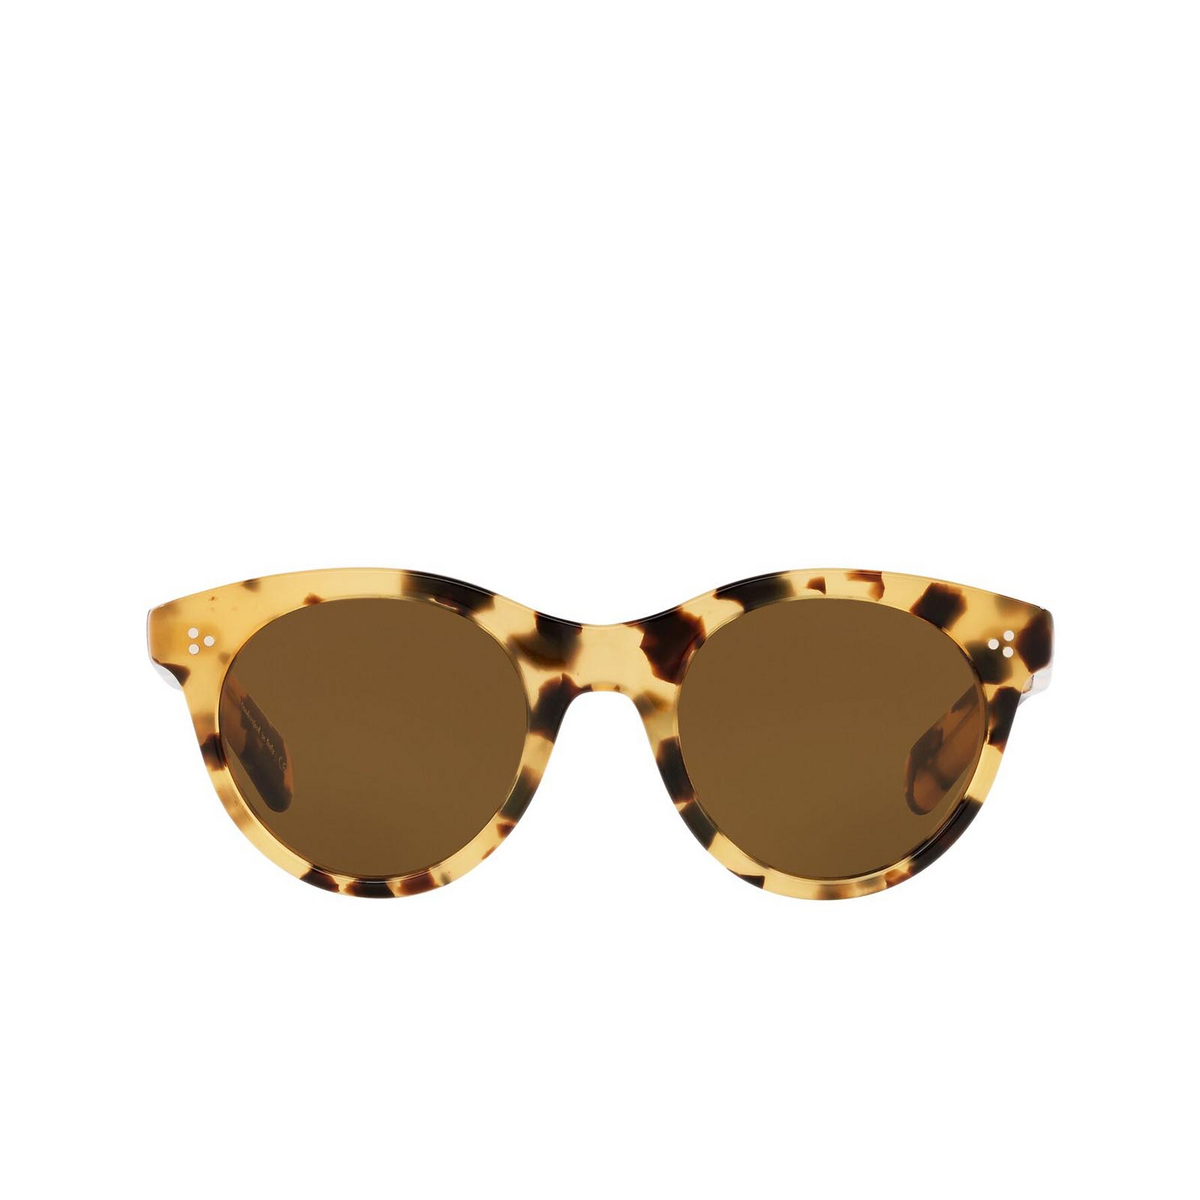 Oliver Peoples® Round Sunglasses: Merrivale OV5451SU color Ytb 170153 - front view.